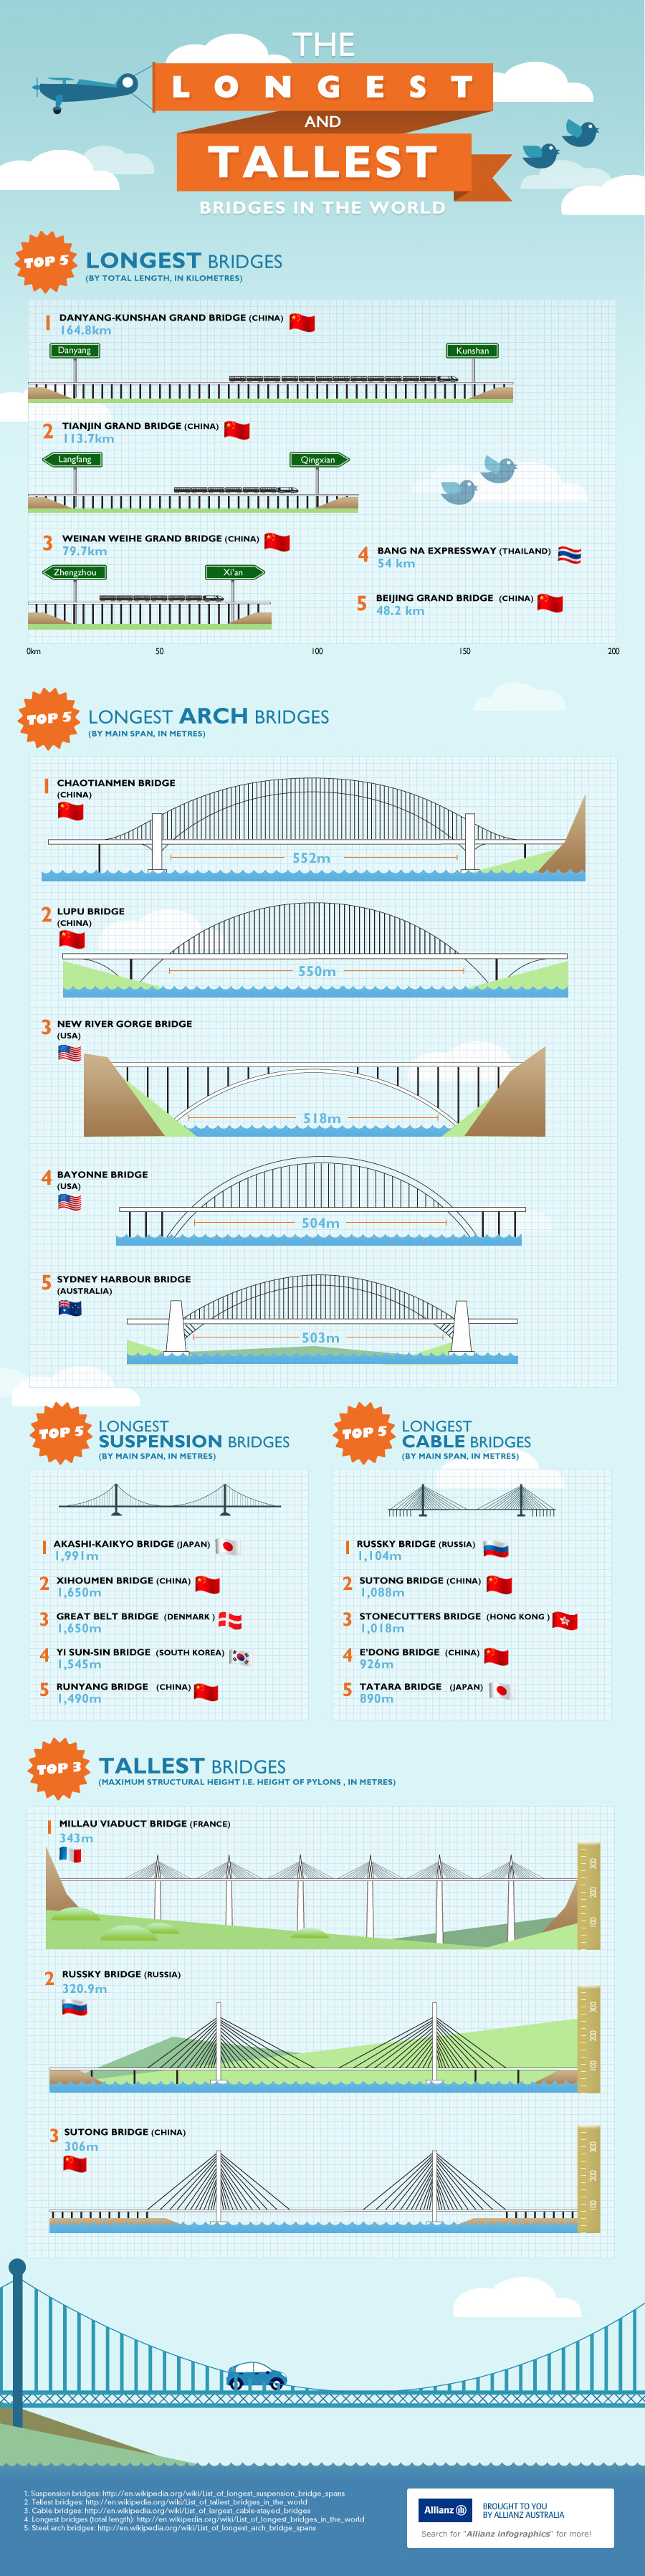 Longest and tallest Bridges